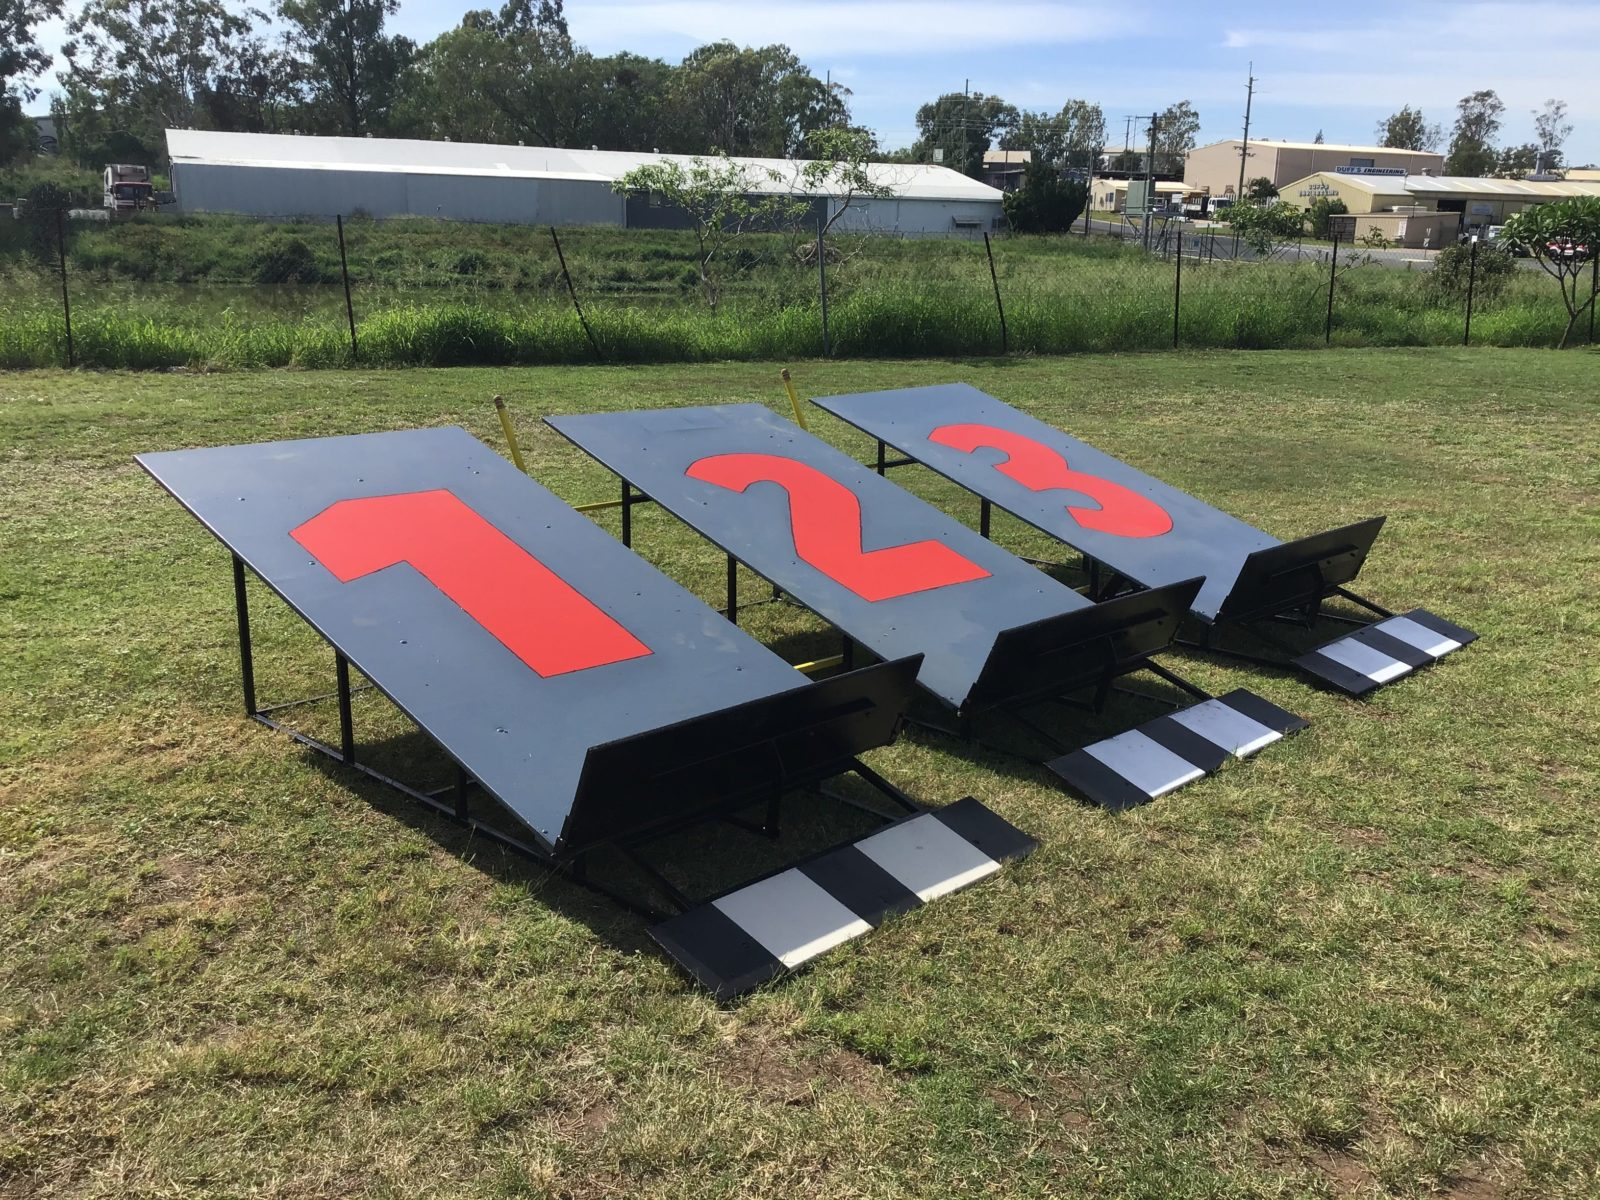 donated by Lockyer valley steel